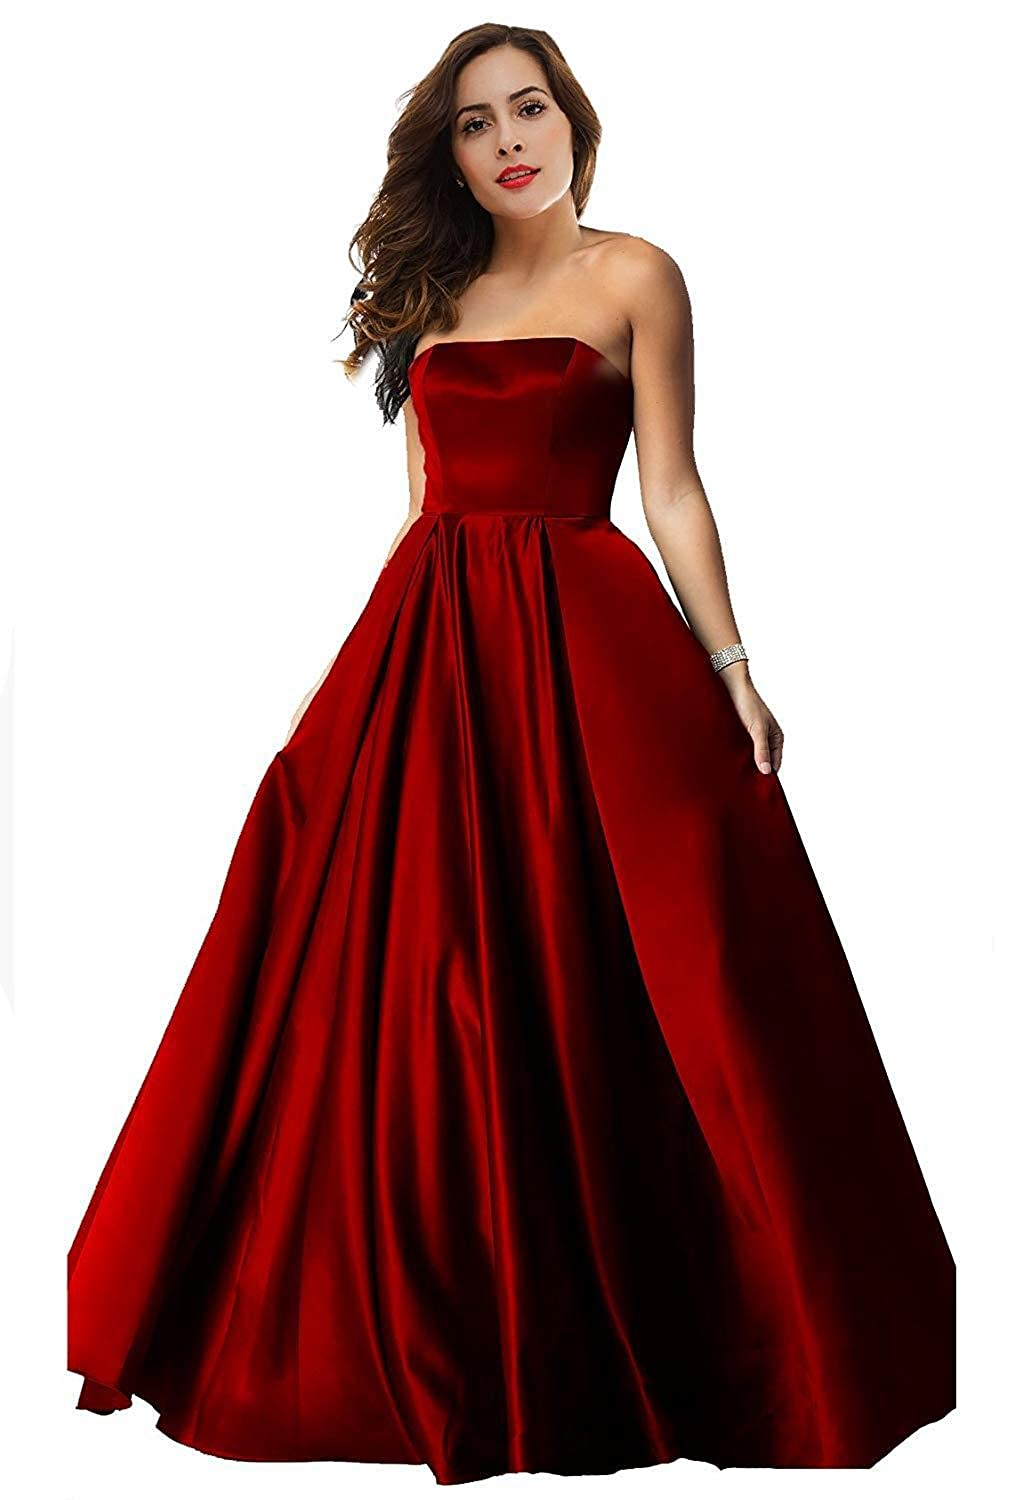 Dark Red Womens Satin Long Prom Dresses 2019 Floor Length Strapless Evening Gowns P179